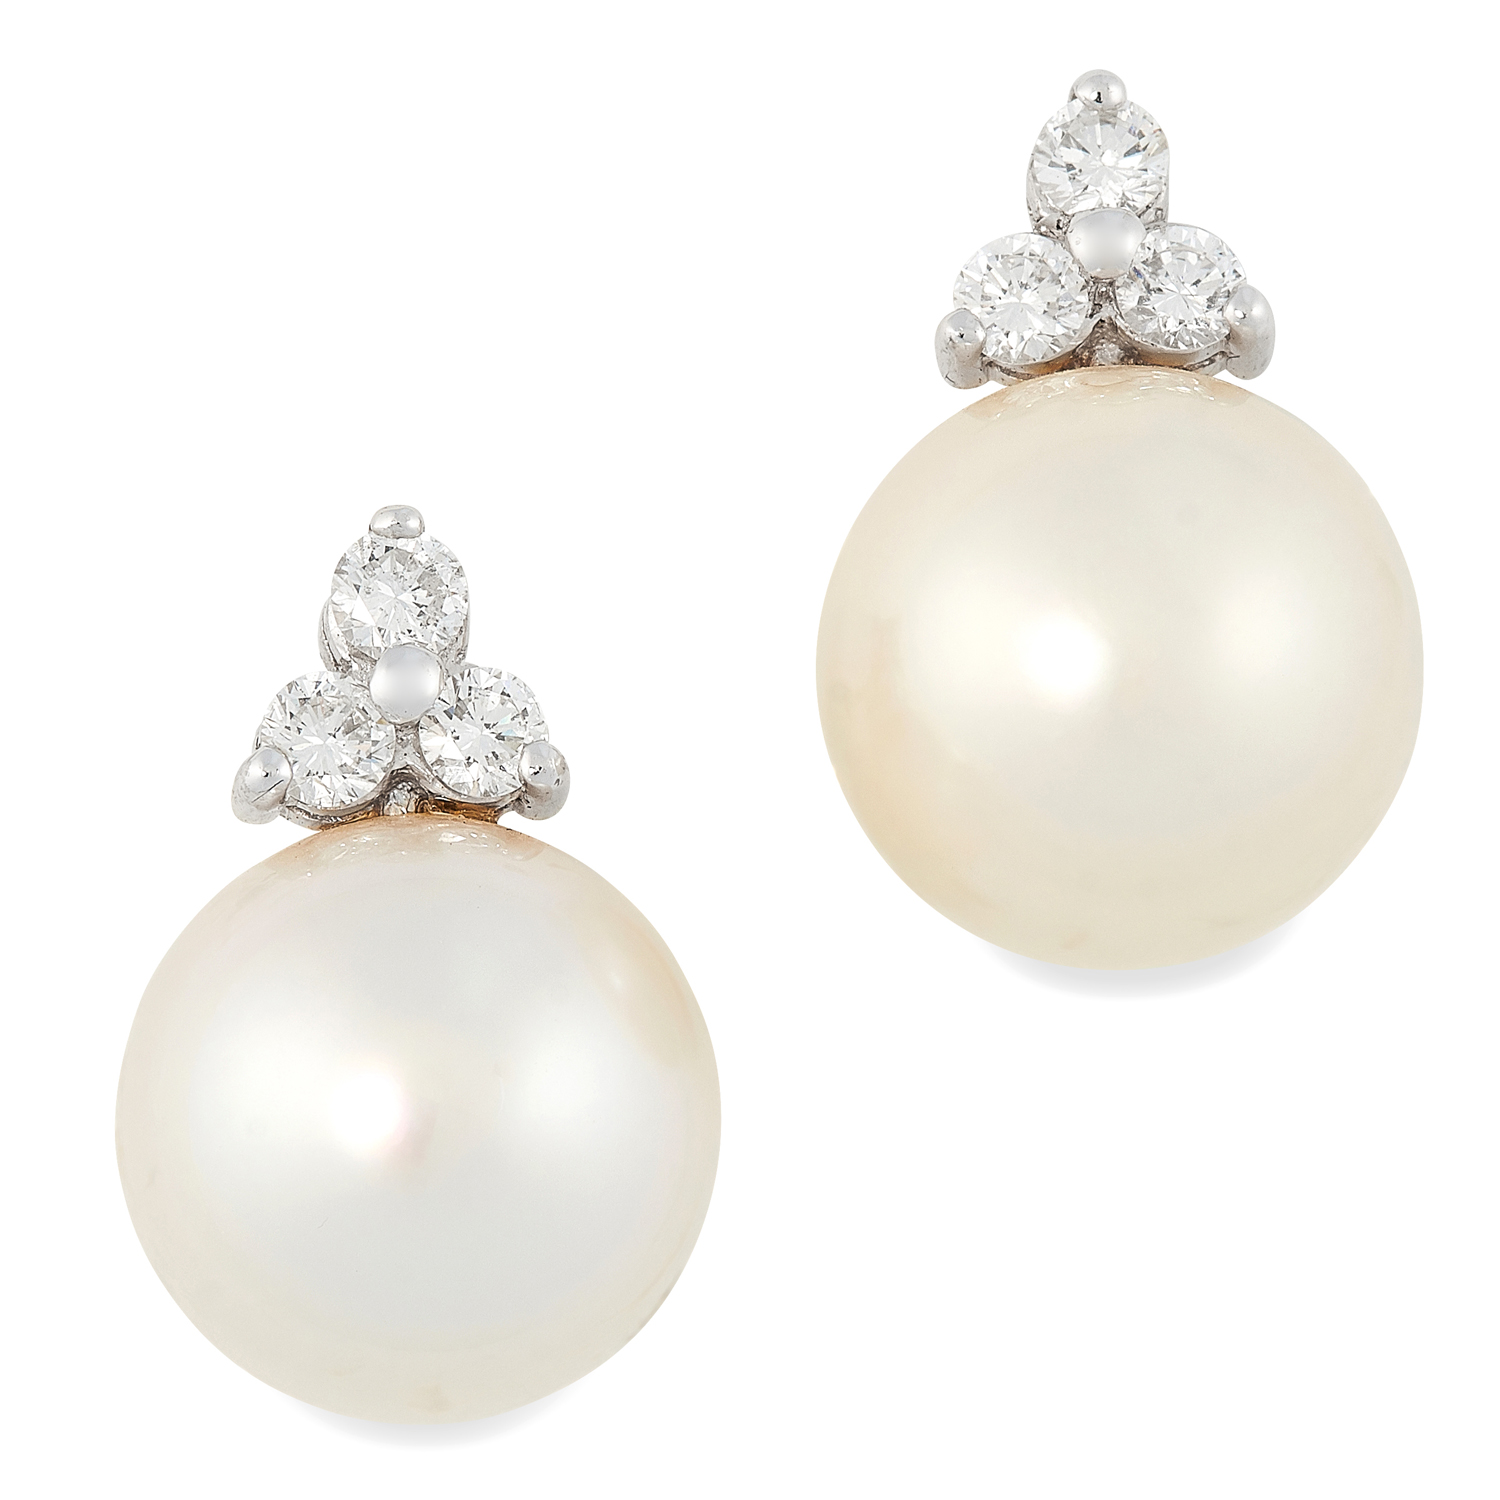 A PAIR OF PEARL AND DIAMOND EARRINGS each set with of a trio of round cut diamonds totalling 0.7-0.8